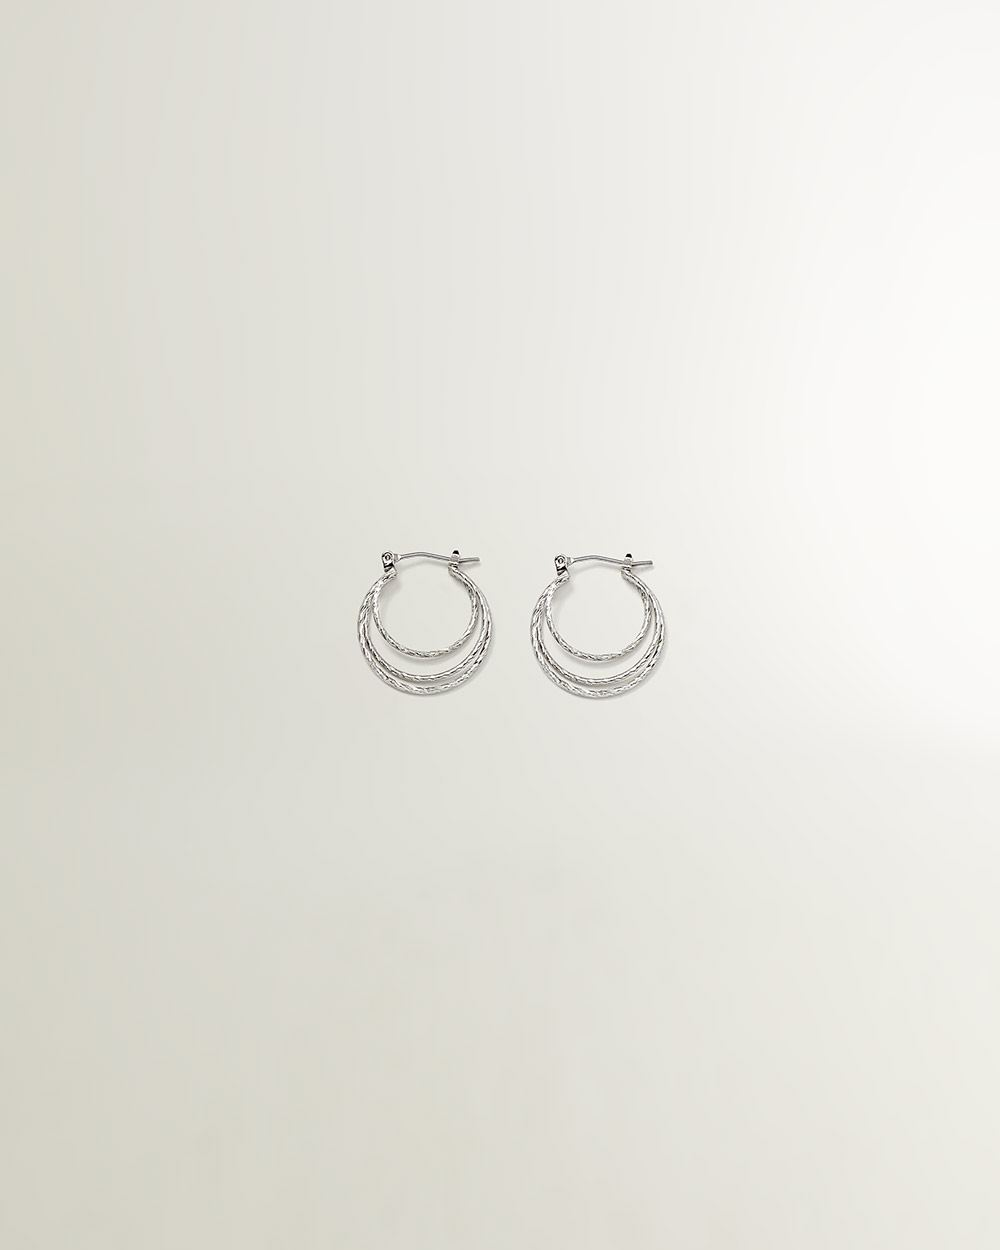 3-Level Silver Hoop Earrings